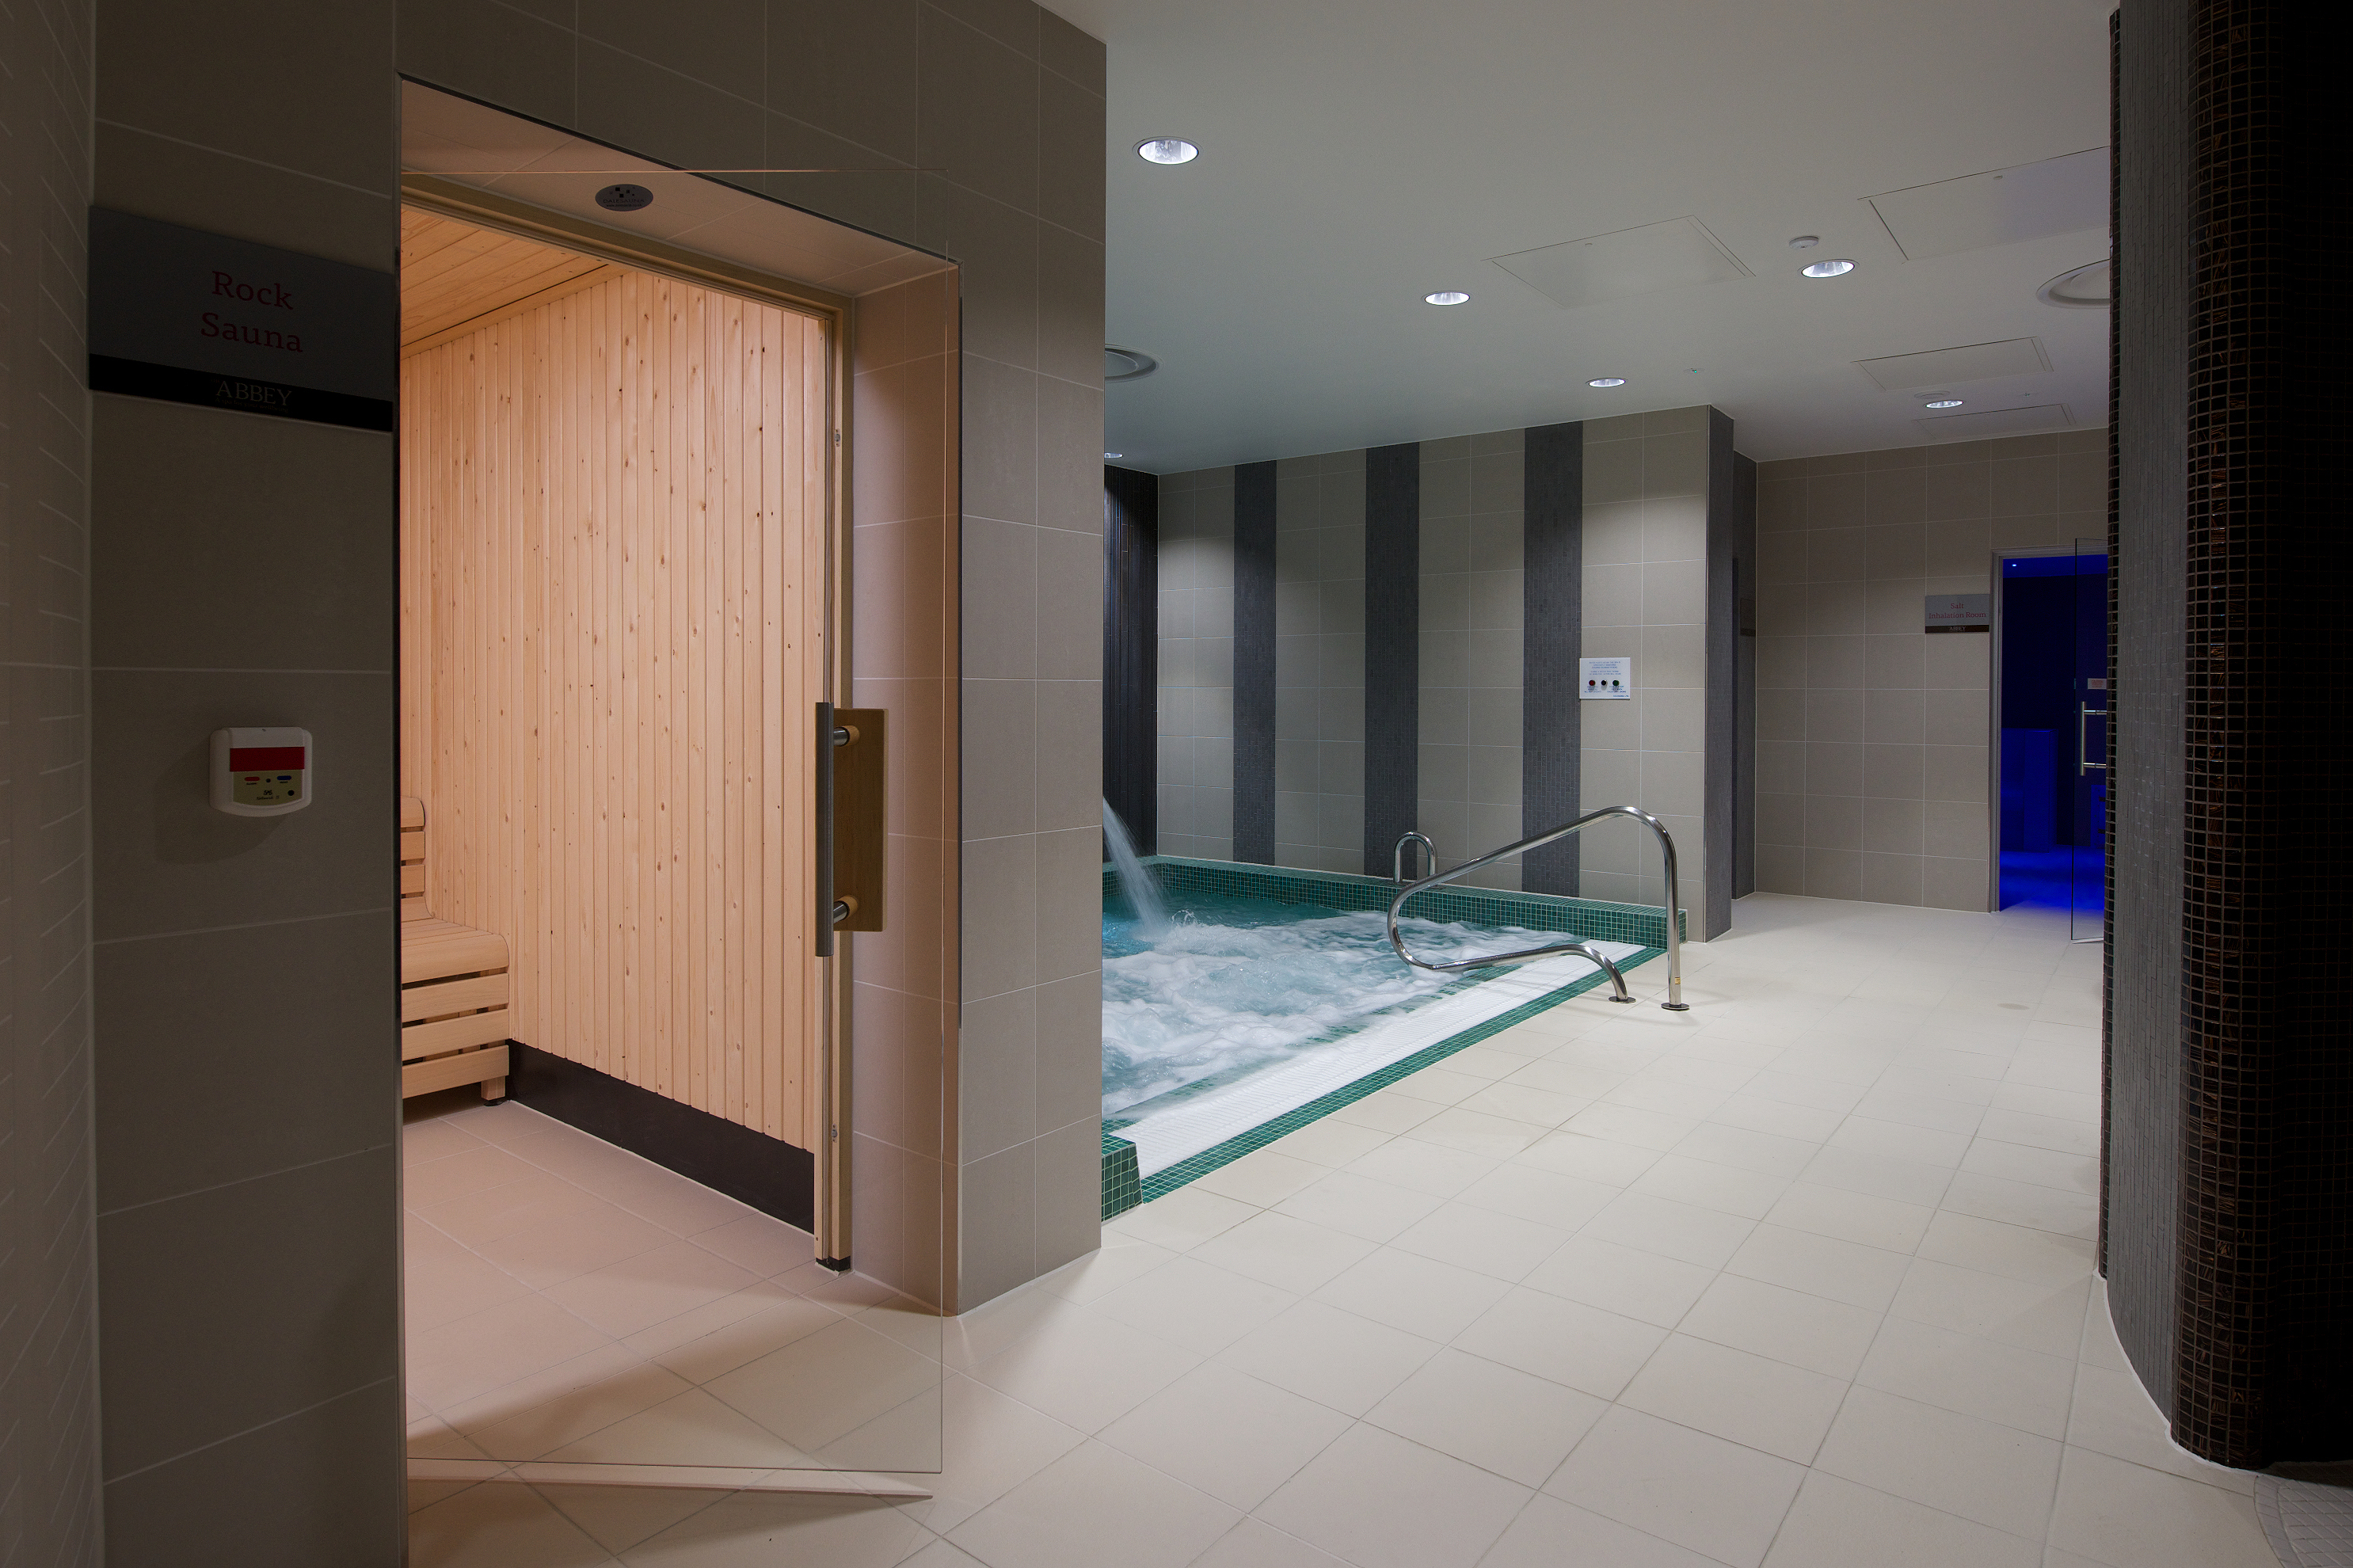 Dalesauna Thermal Spa Launches At 163 14m Leisure Centre